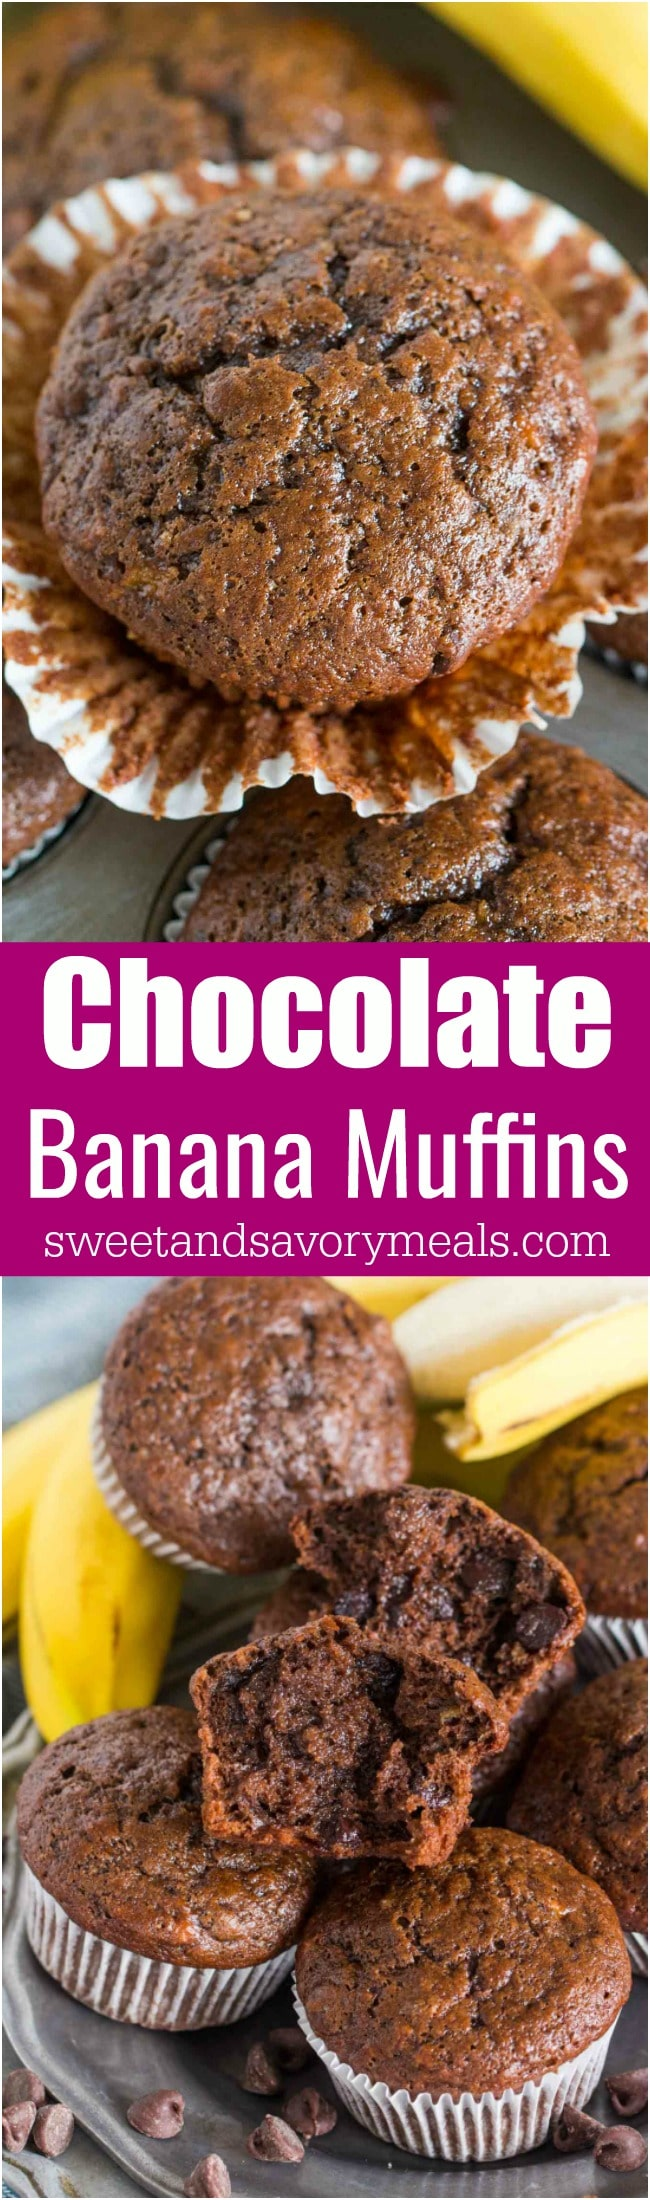 Chocolate Banana Muffins are the best way to use over ripe bananas. The muffins are very easy to make, soft, chocolaty and full of flavor.